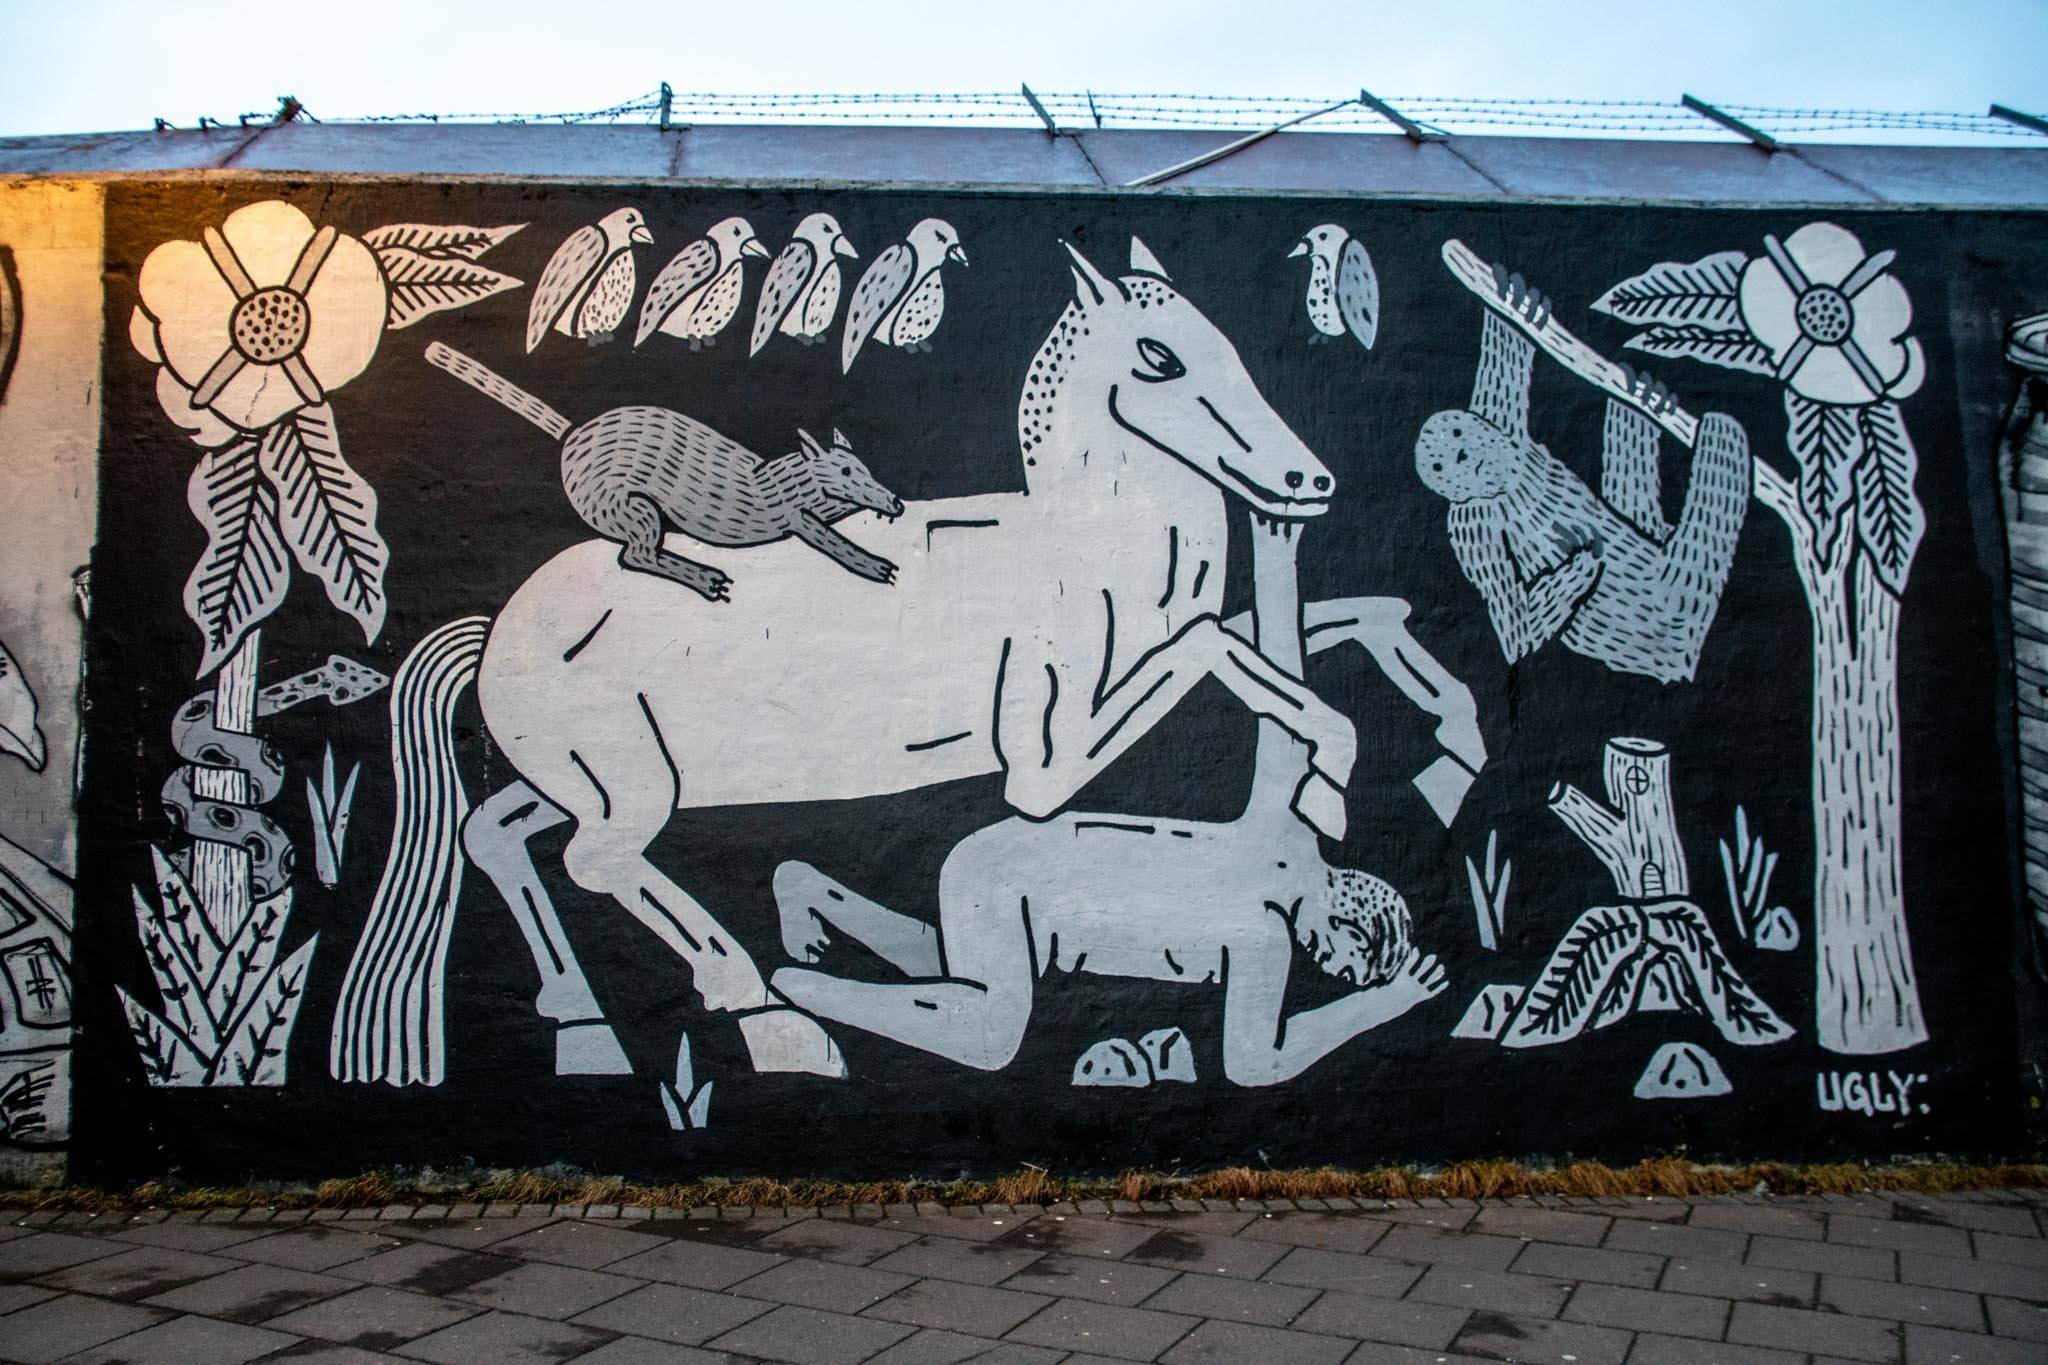 Another mural by Ugly Brothers in Reykjavik.